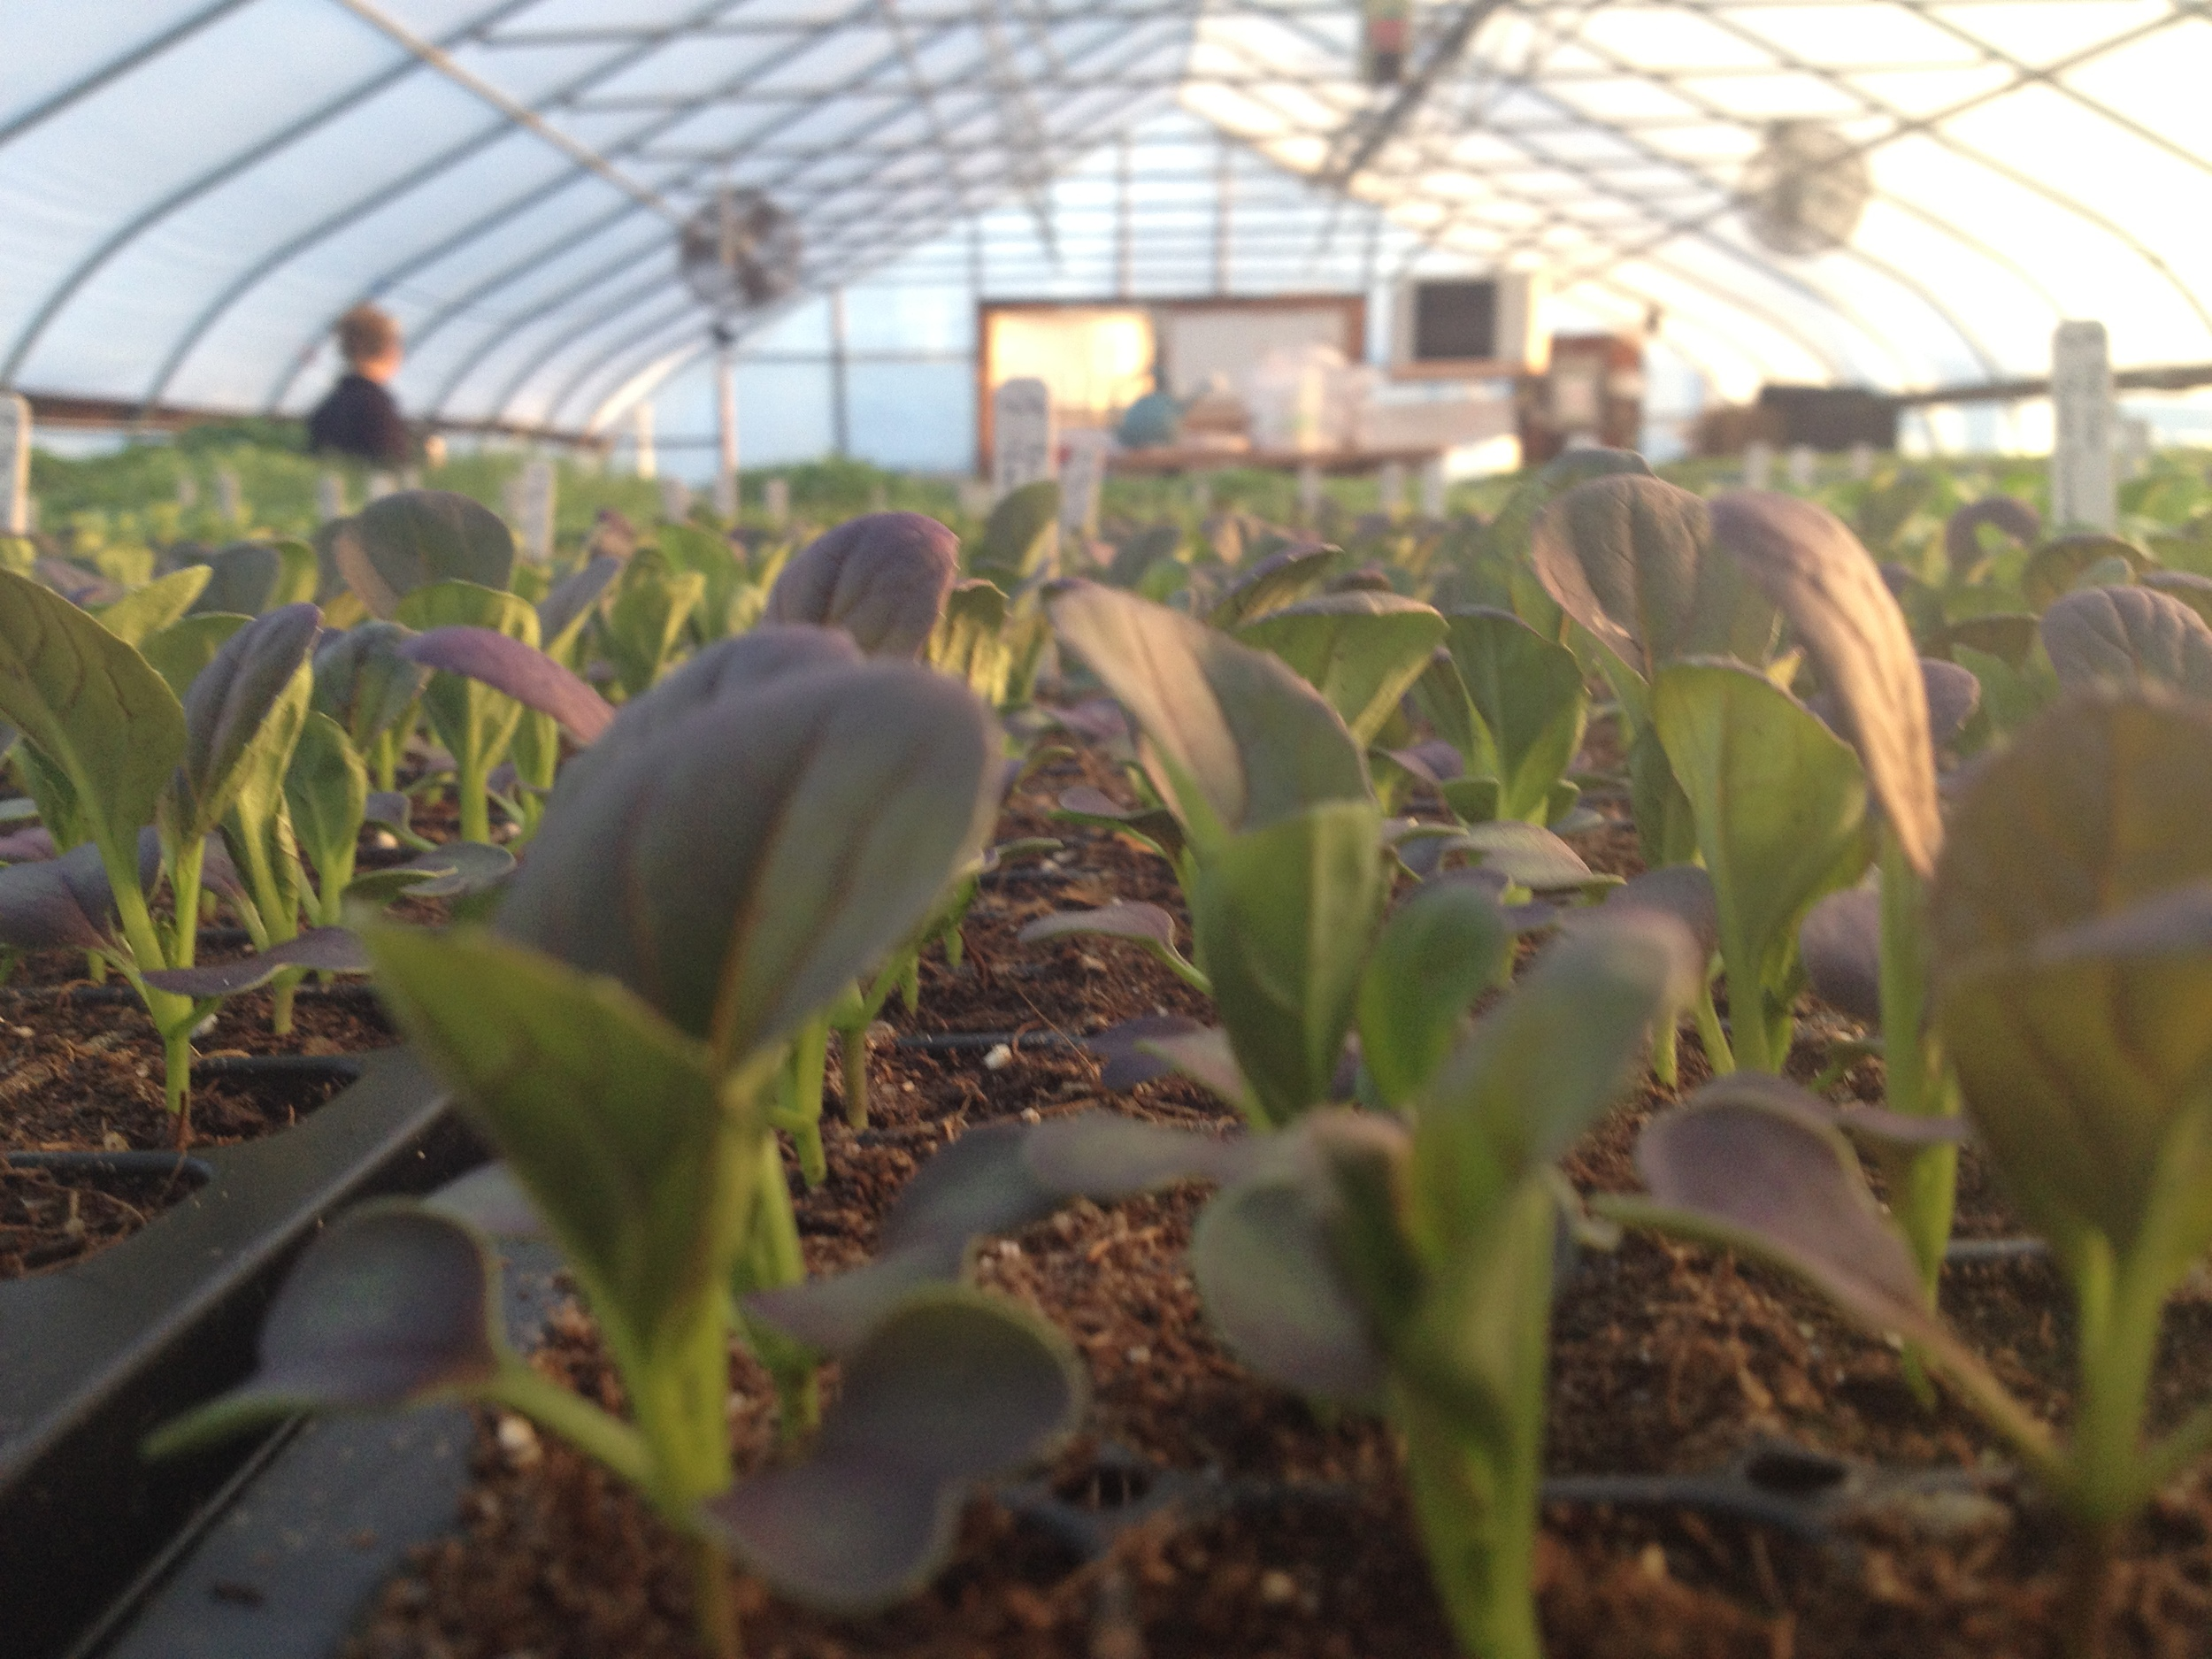 Brassica seedlings soaking up the rays.